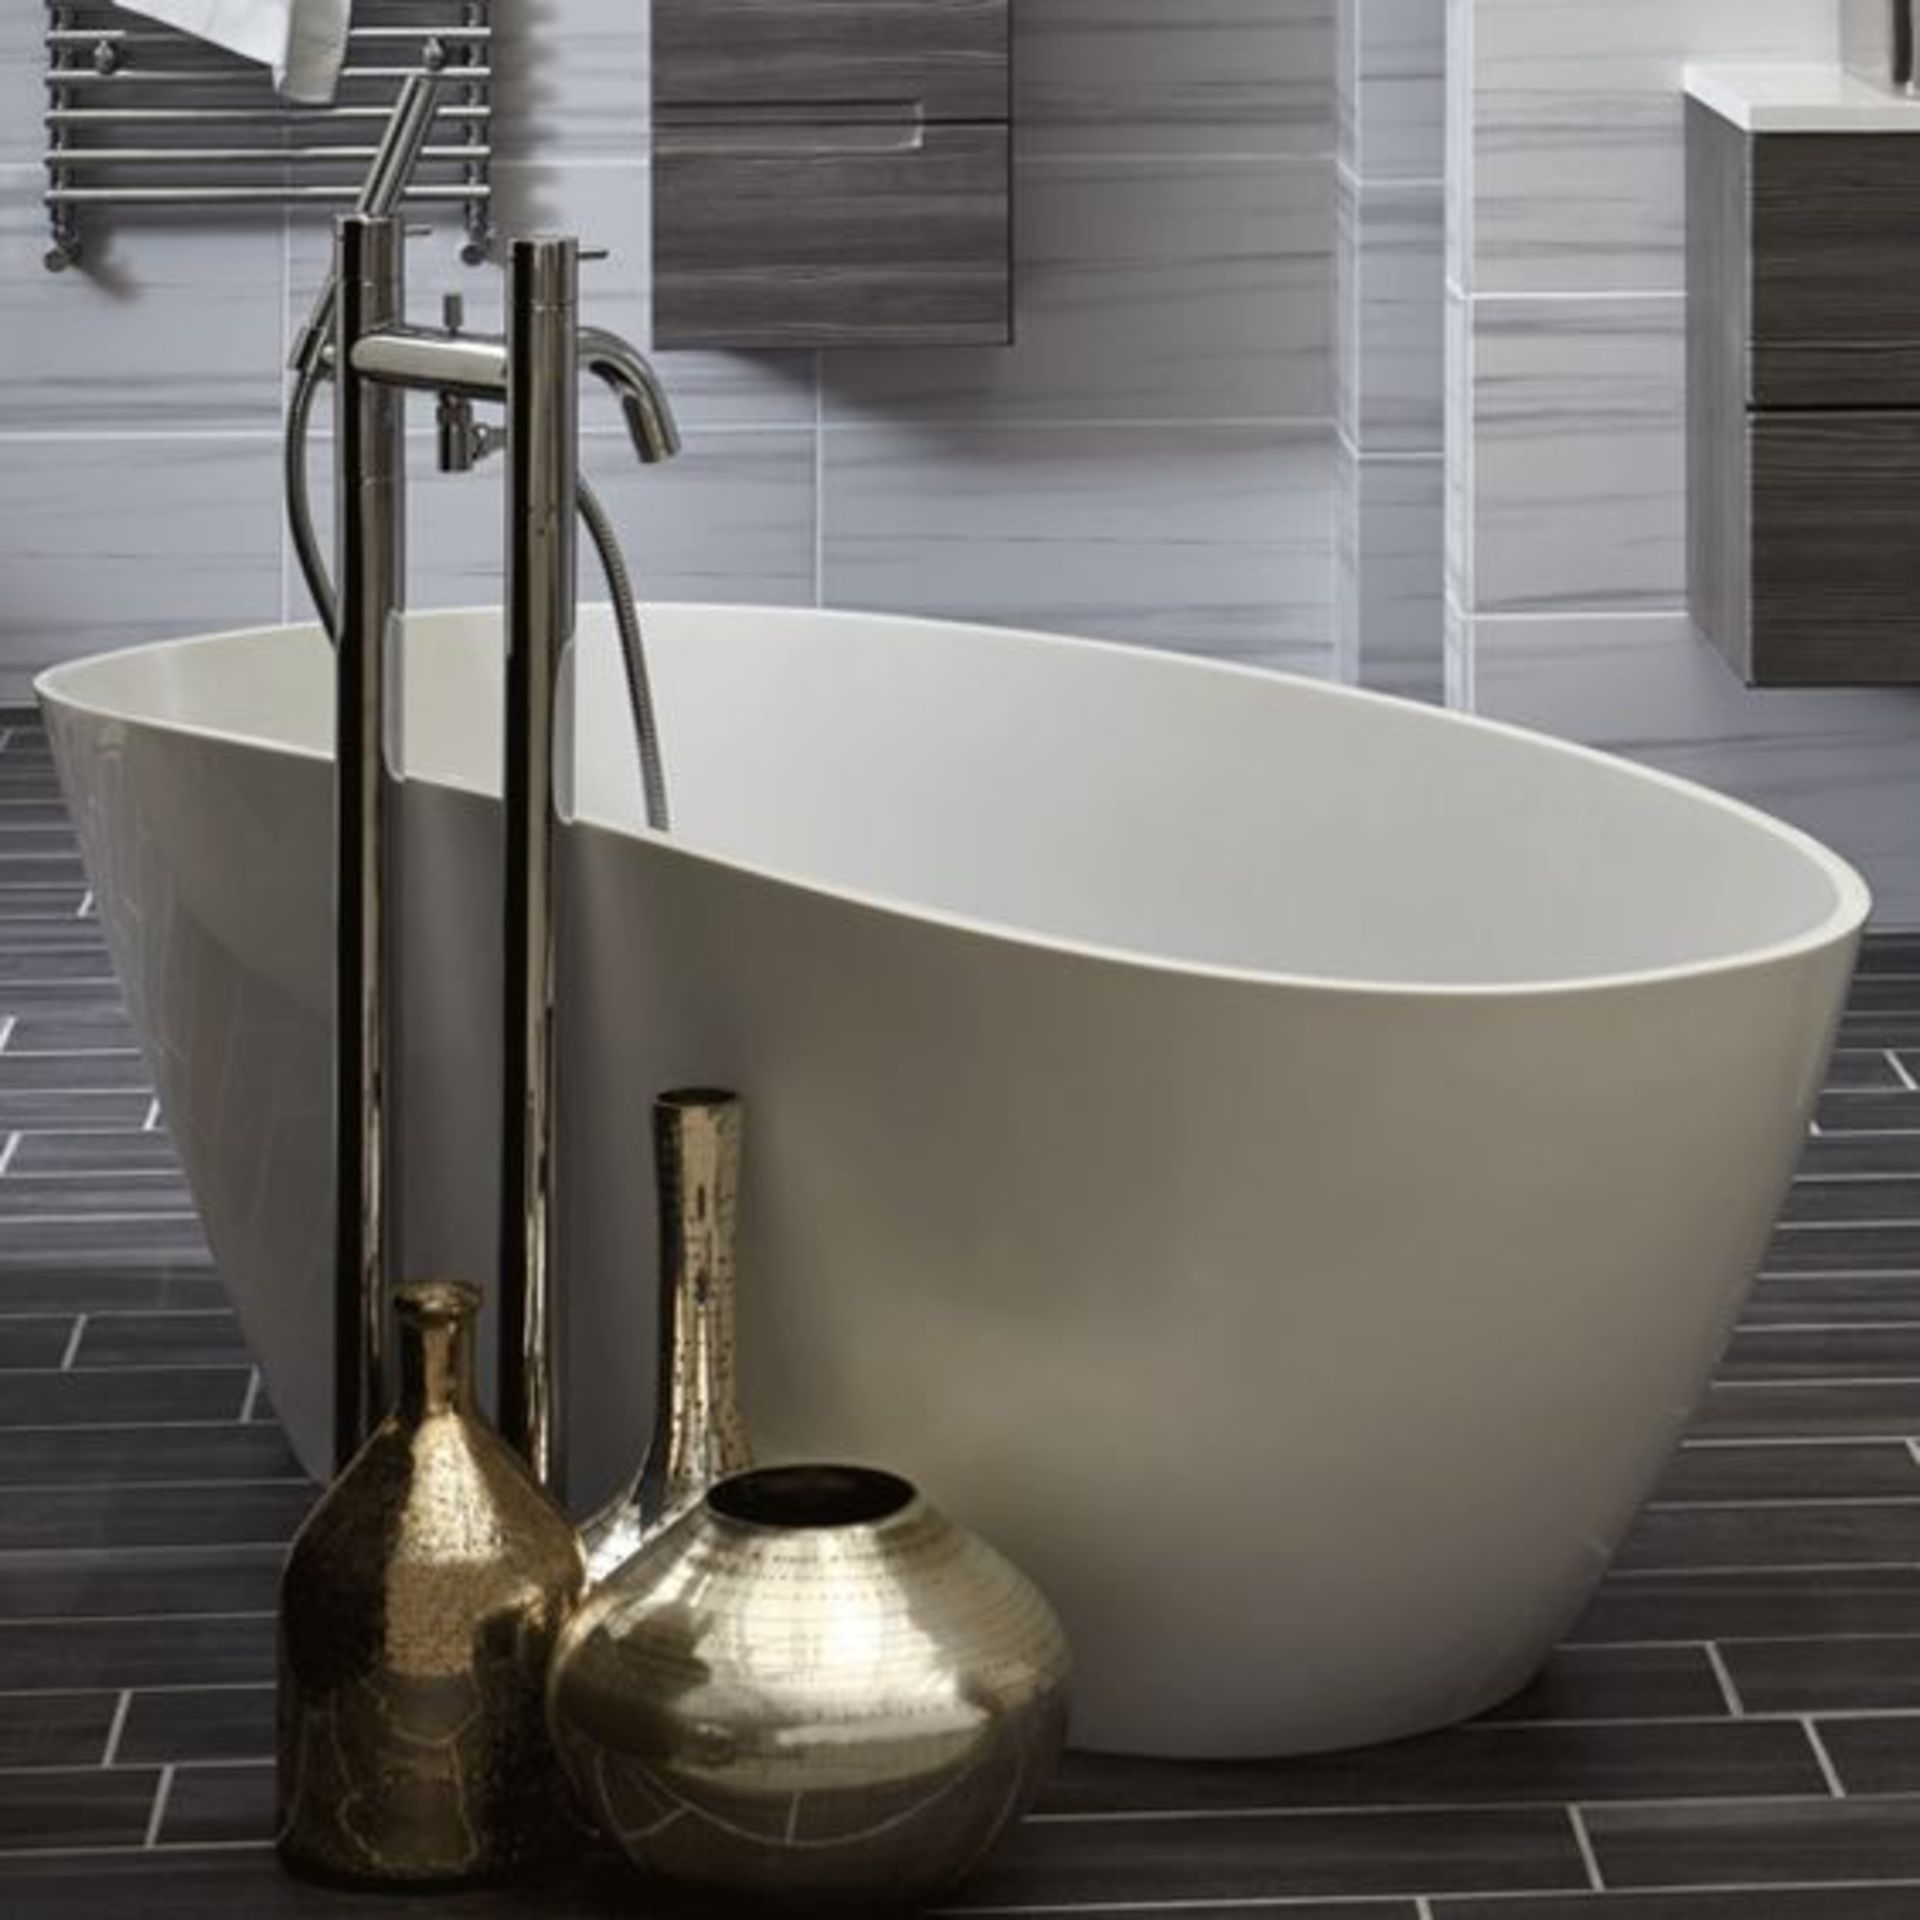 Lot 1 - 1670 X 690MM BAYOU SOLID STONE RESIN 'TOUCHSTONE' LUXURY FREESTANDING BATH WITH INTEGRATED OVERFLOW